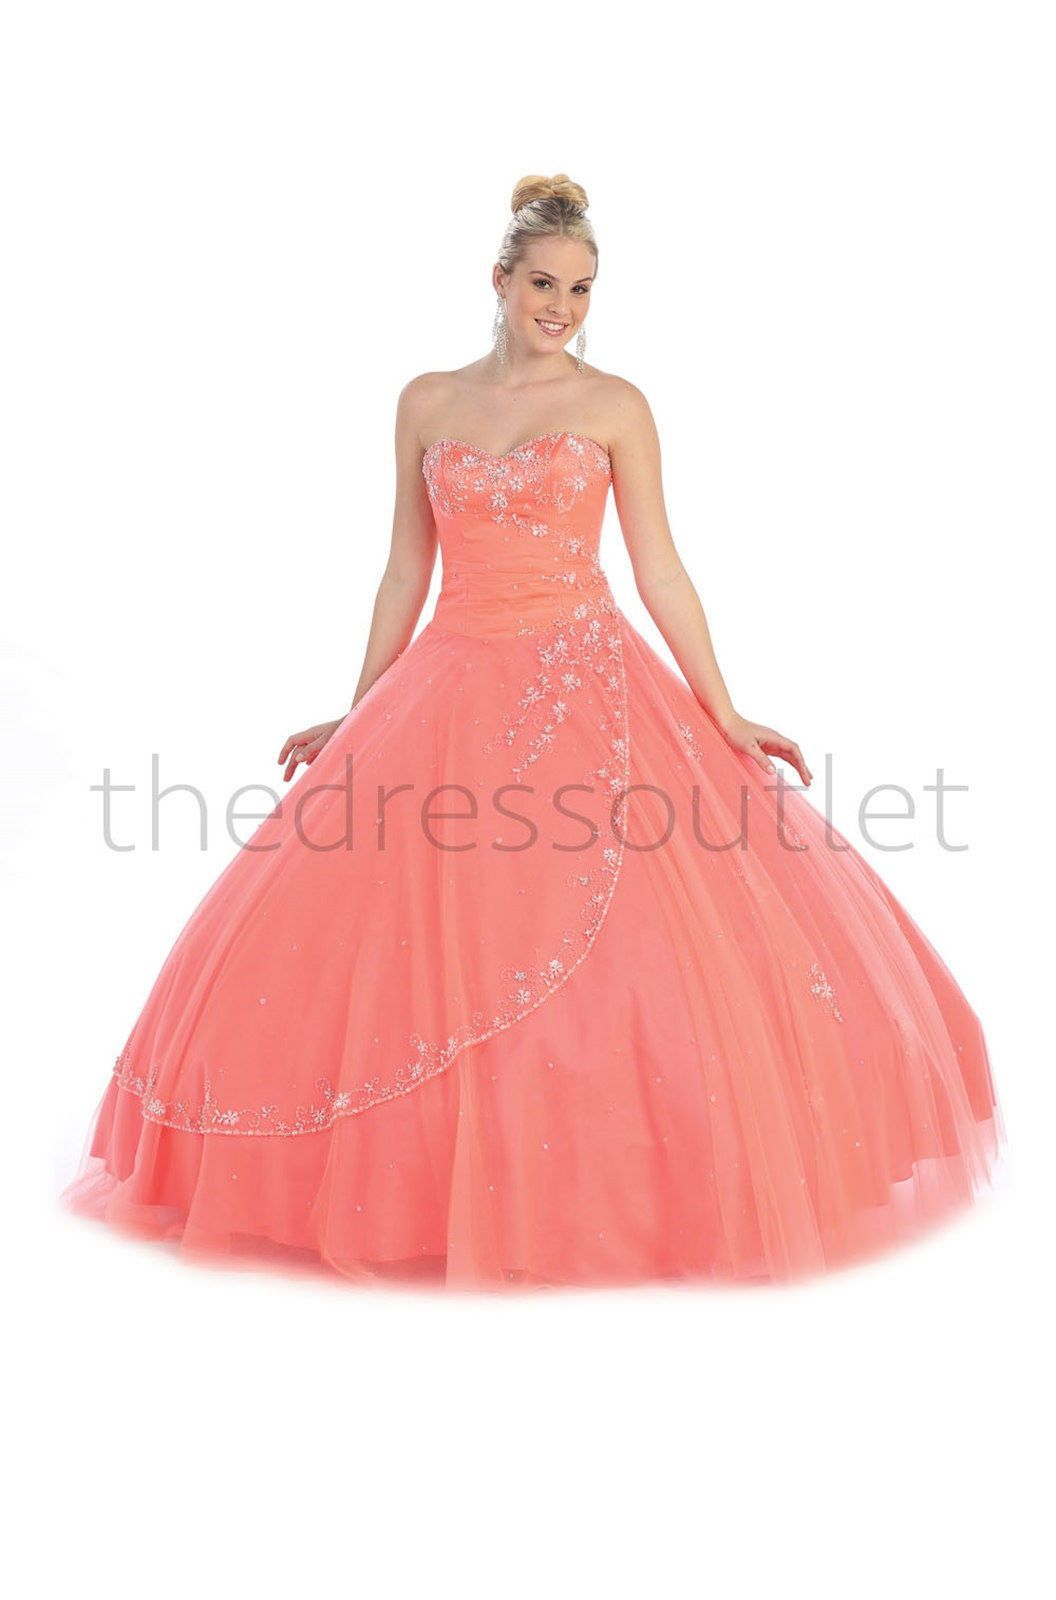 Quinceanera Long Ball Gown Sweet 16 Dress 2018 | Bodas de invierno ...